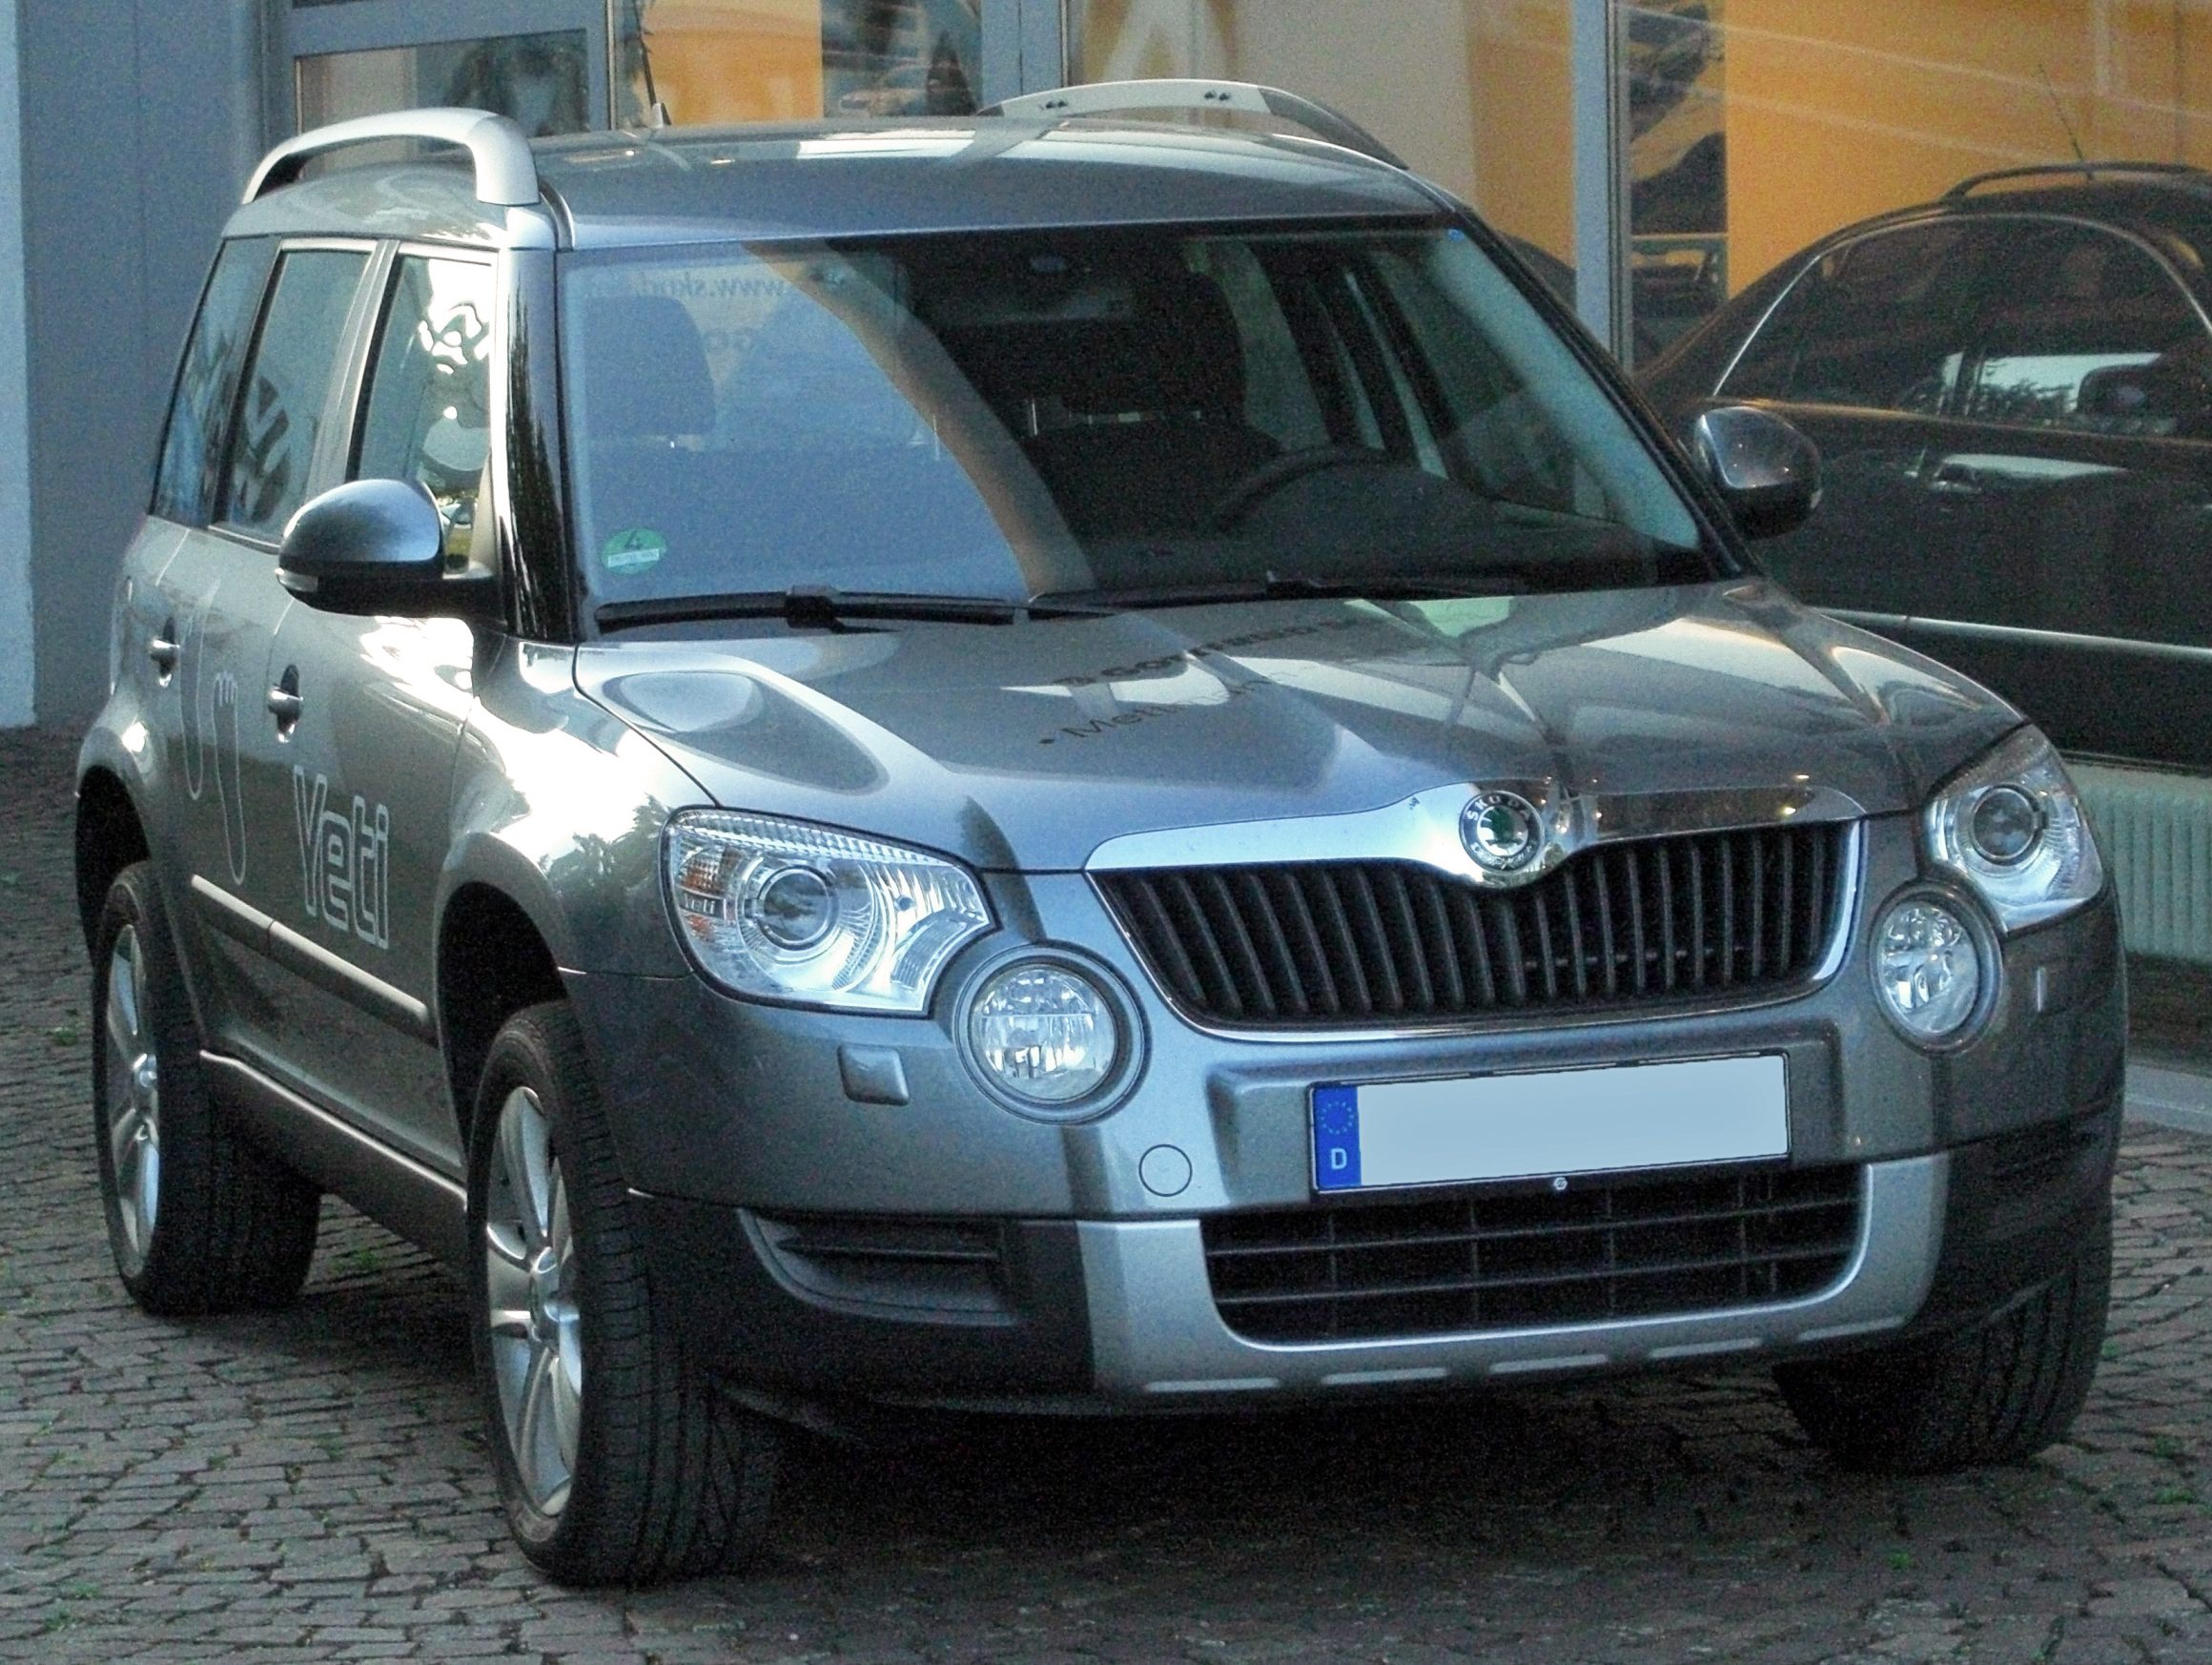 file skoda yeti 2 0 tdi 4x4 front. Black Bedroom Furniture Sets. Home Design Ideas